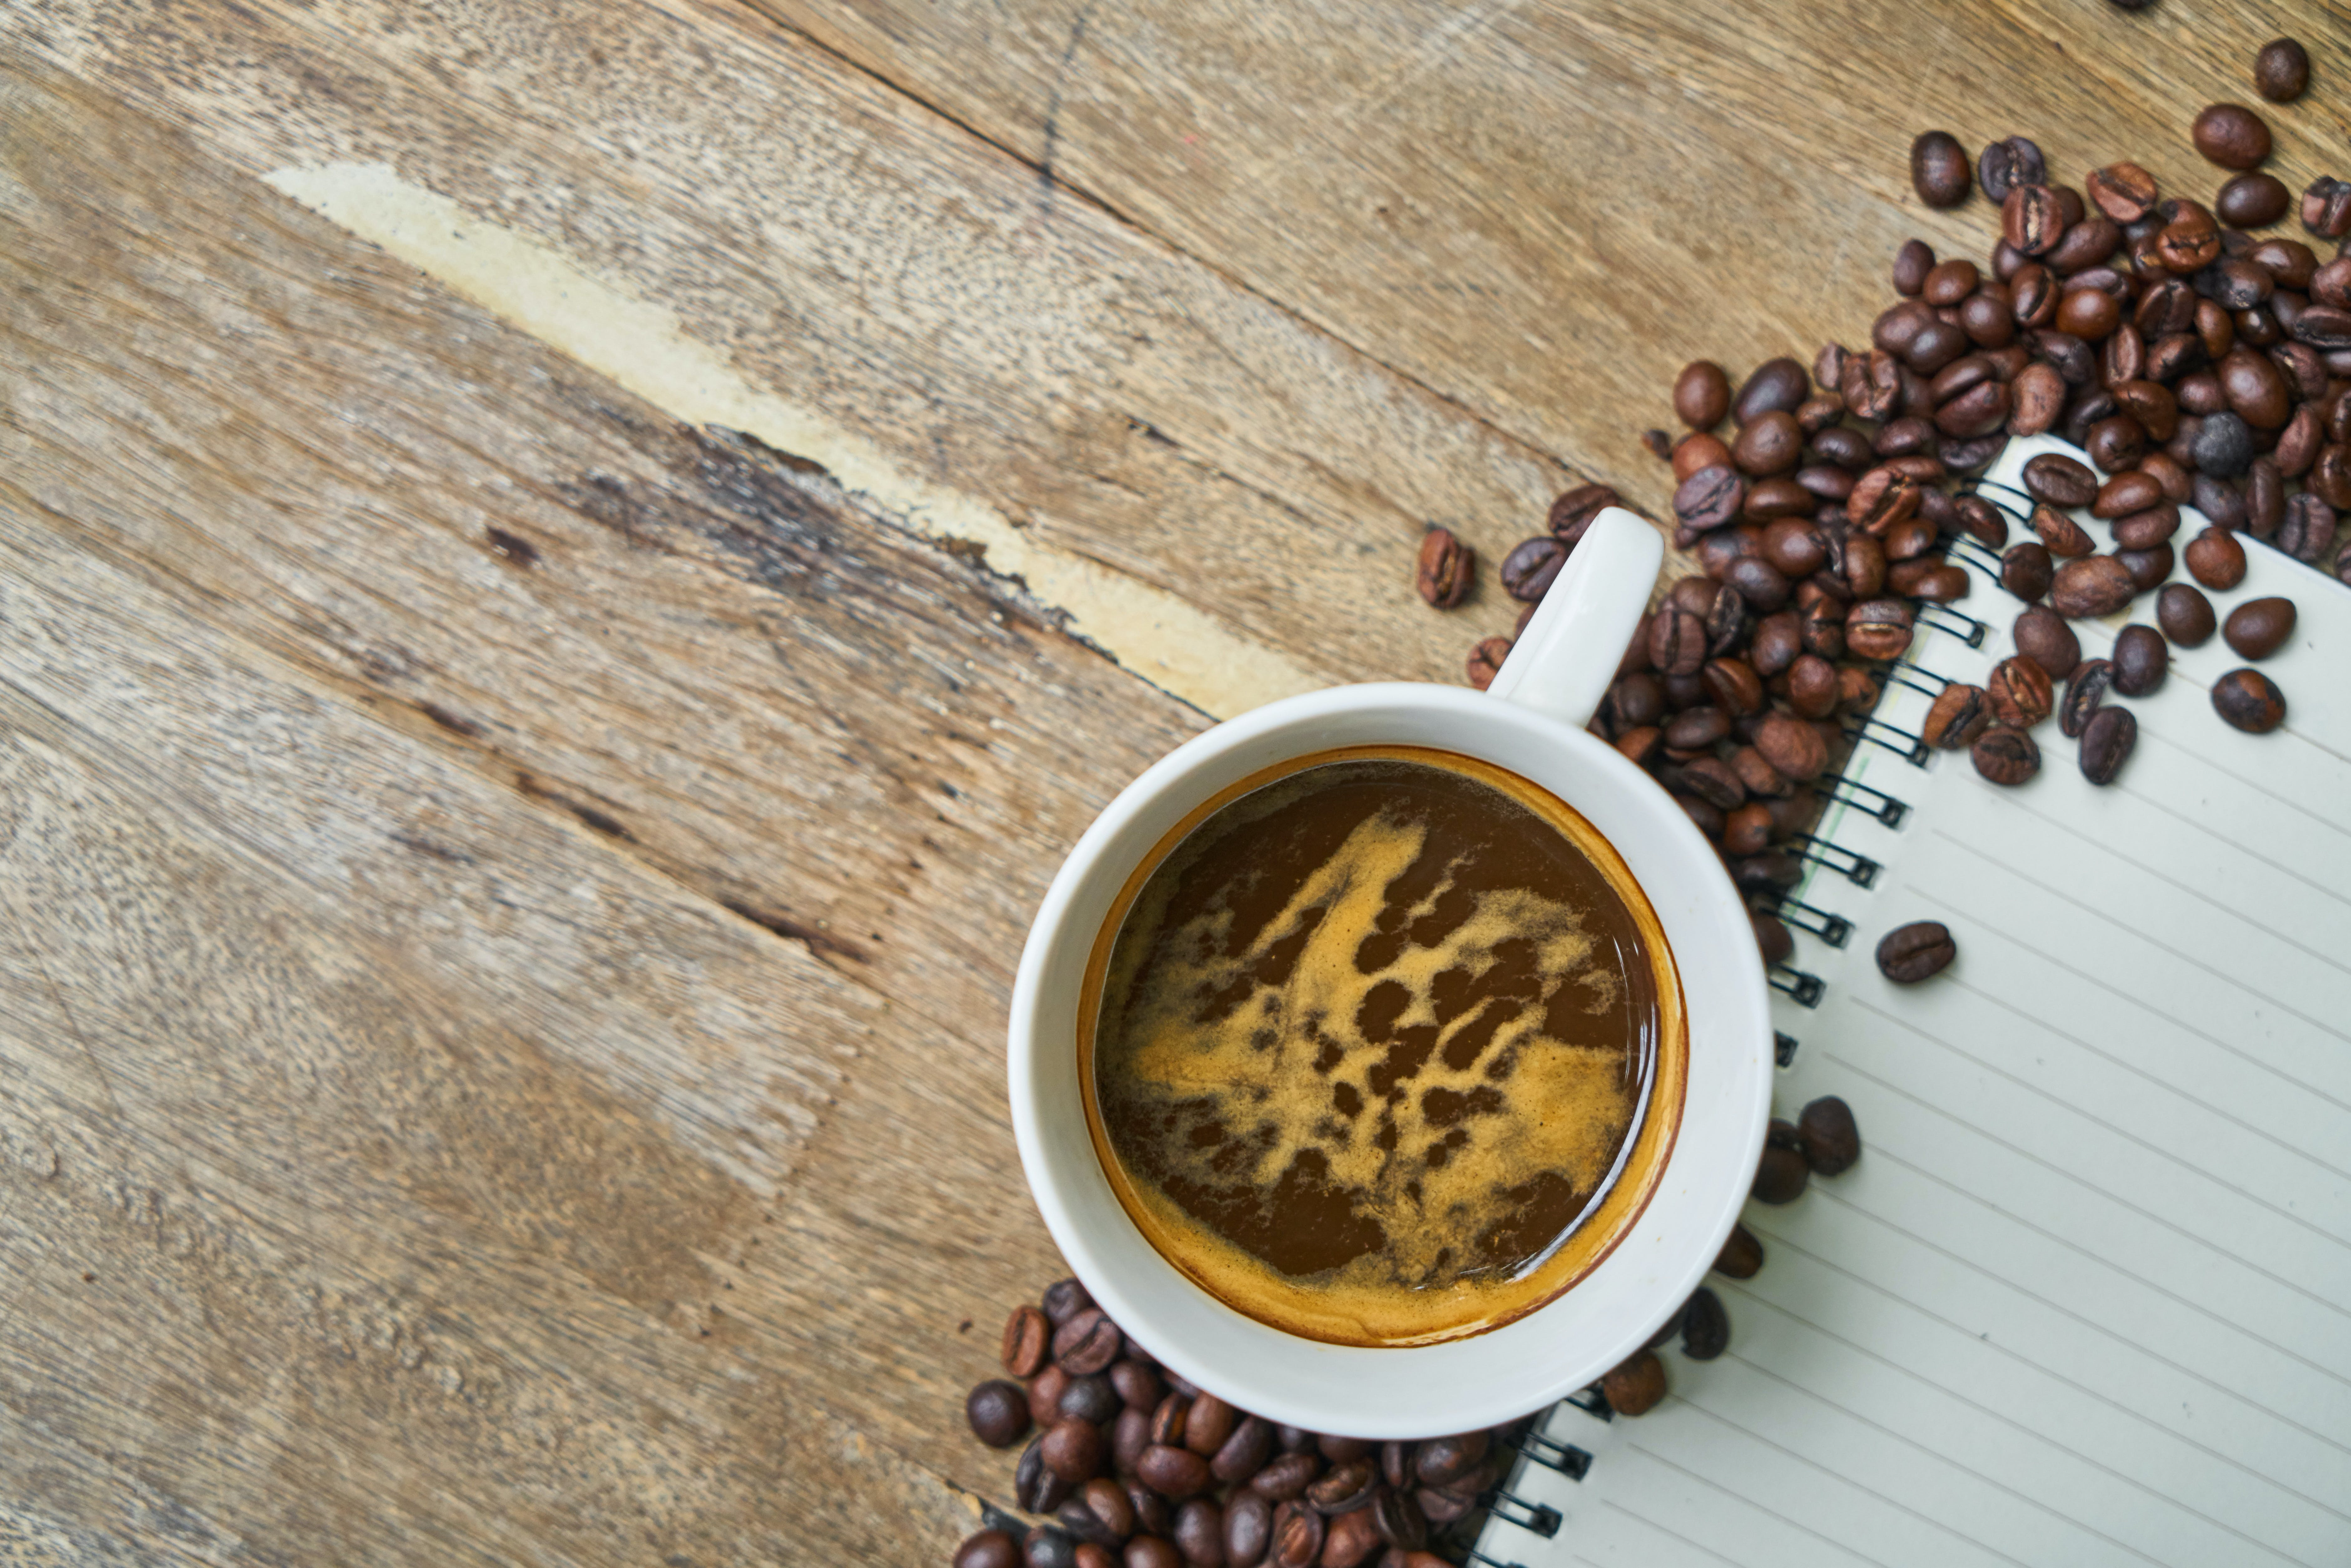 White Mug Filled With Coffee Surrounded by Coffee Beans